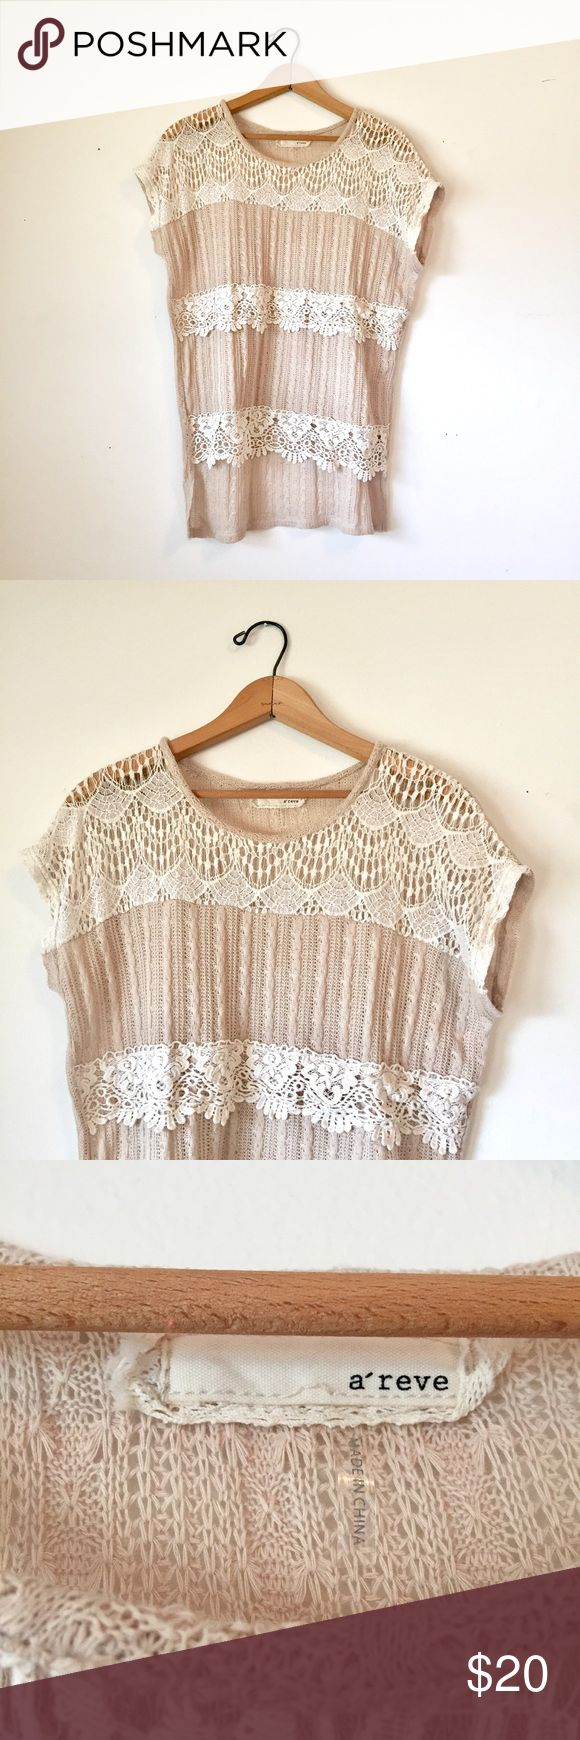 A'reve open knit crochet short sleeve top Beautiful A'reve open knit with crochet stripes high low light weight top. In excellent condition! Perfect top for work or the weekend. Pair with white pants or skinny jeans, statement earring and sandals or flats. A'Reve Tops Blouses